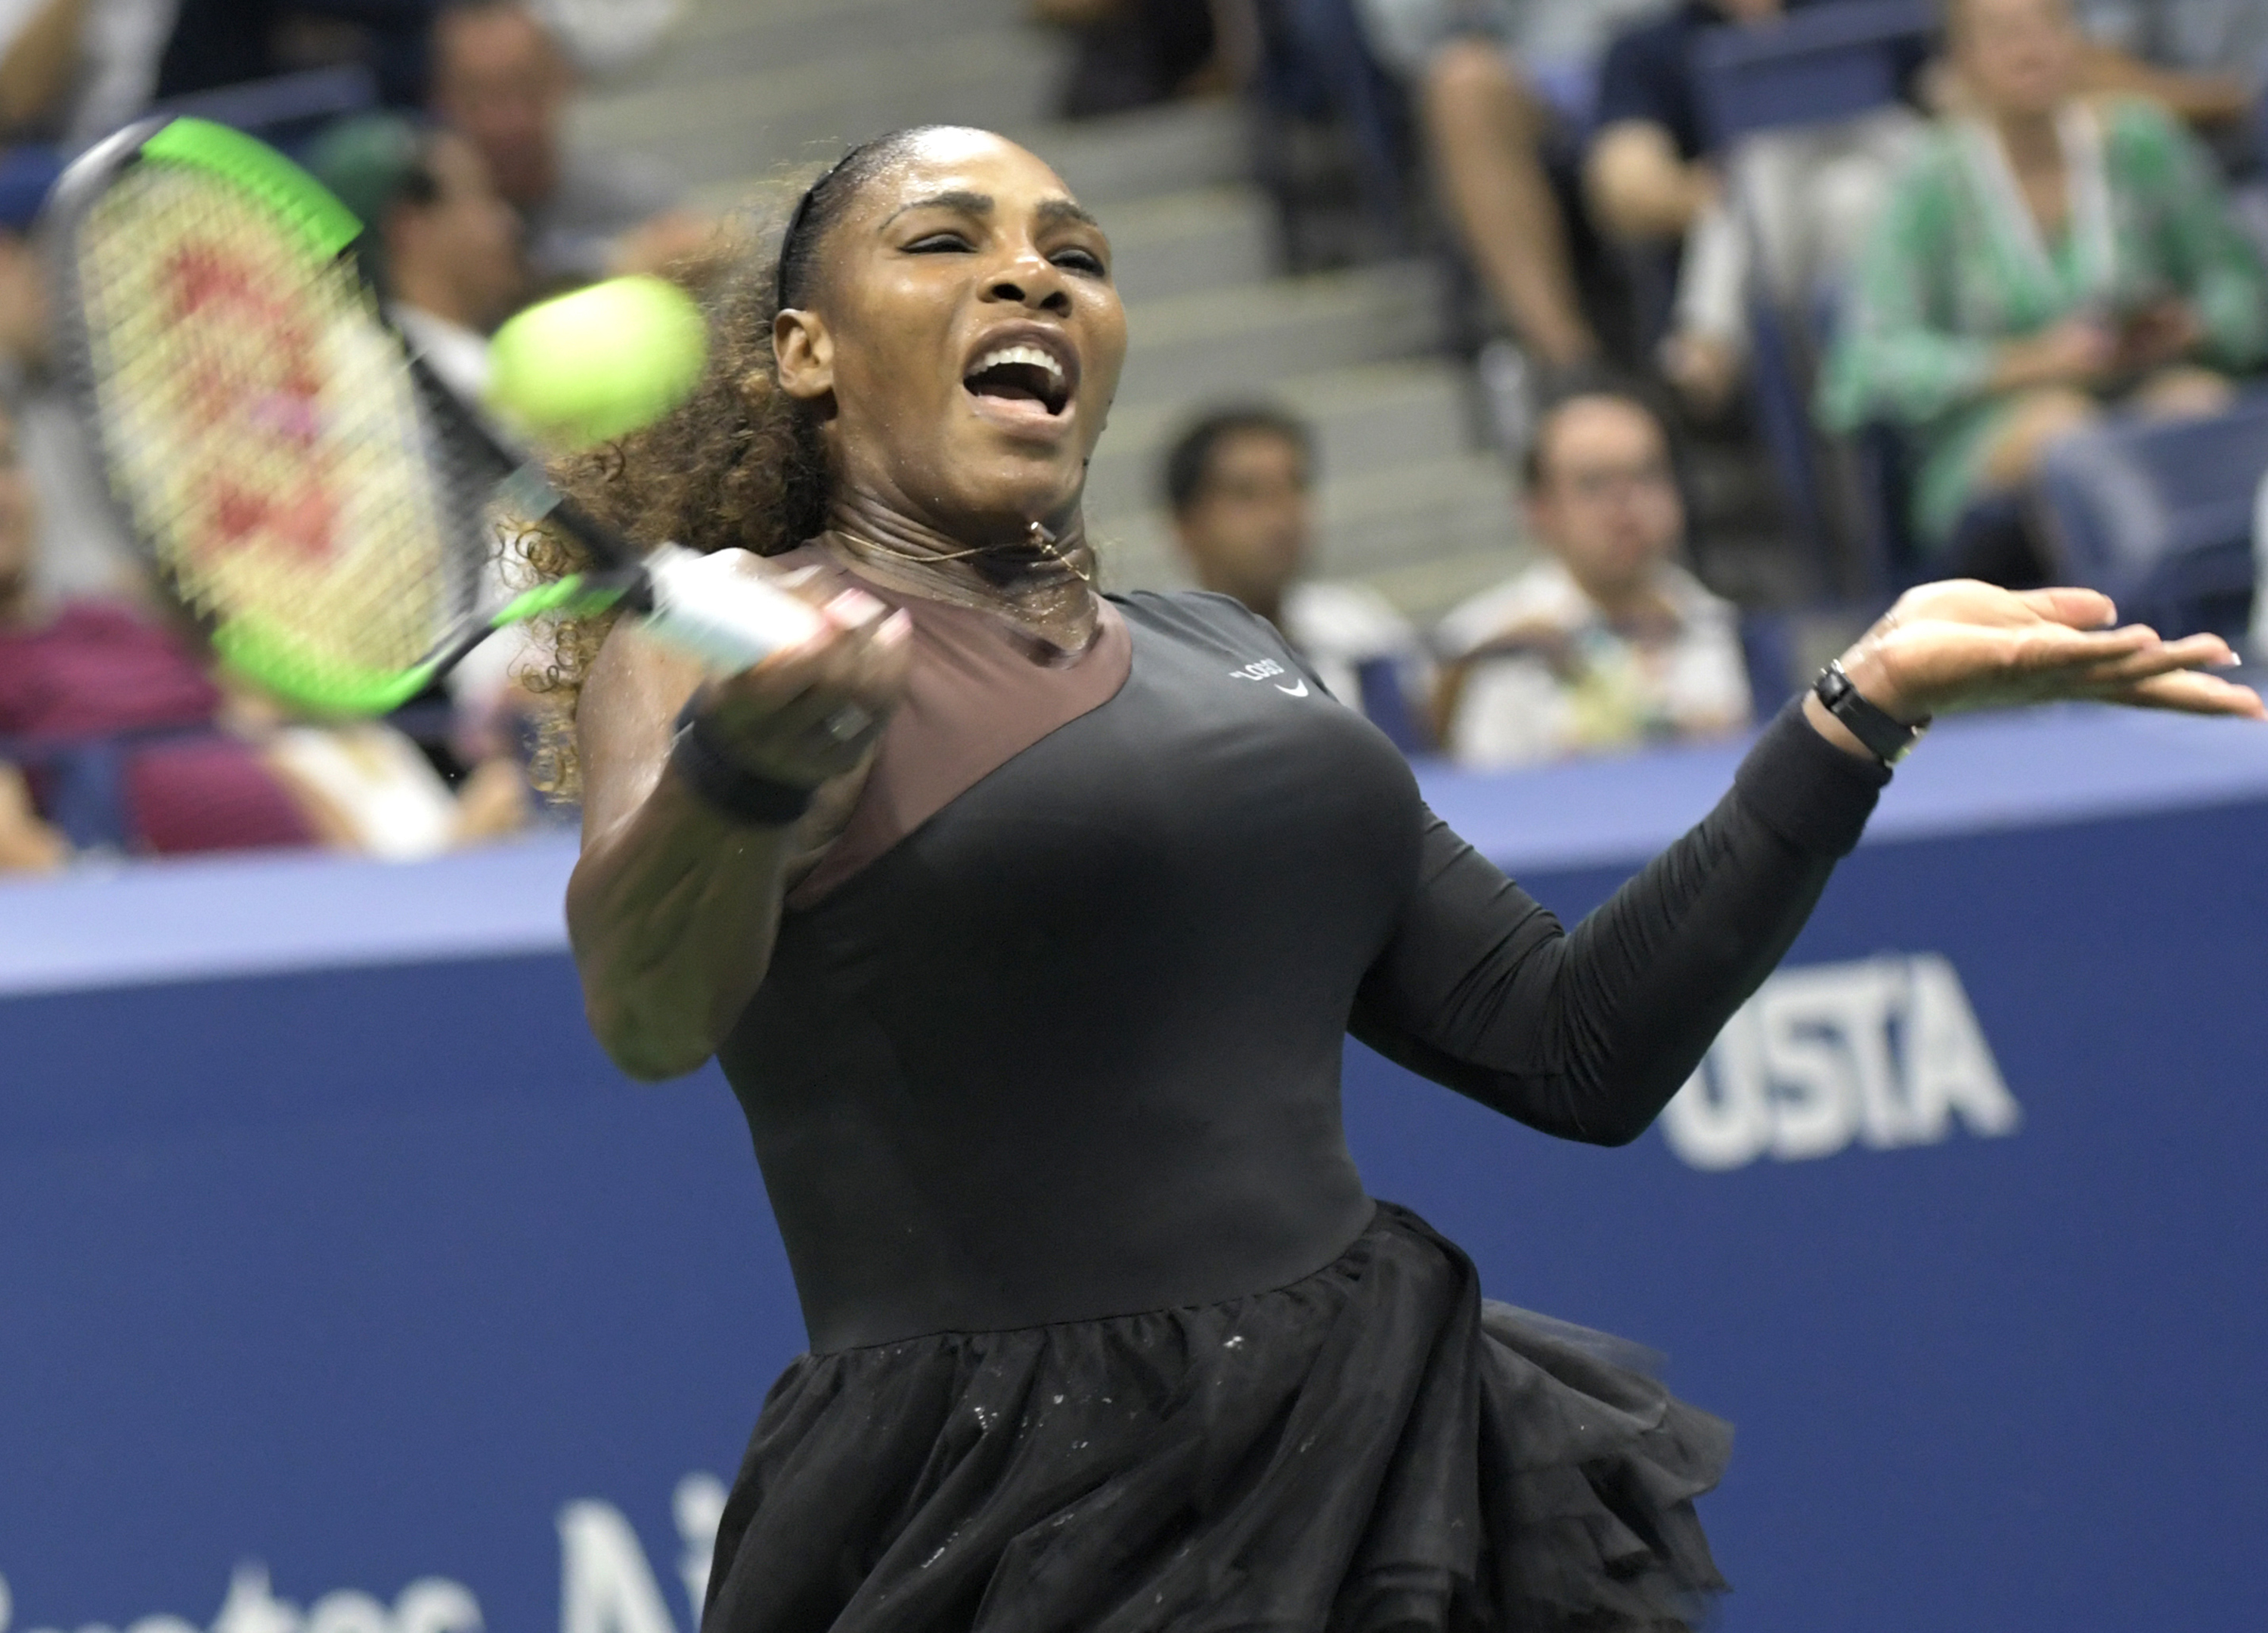 Women in tennis unfairly punished due to misogynistic regulations